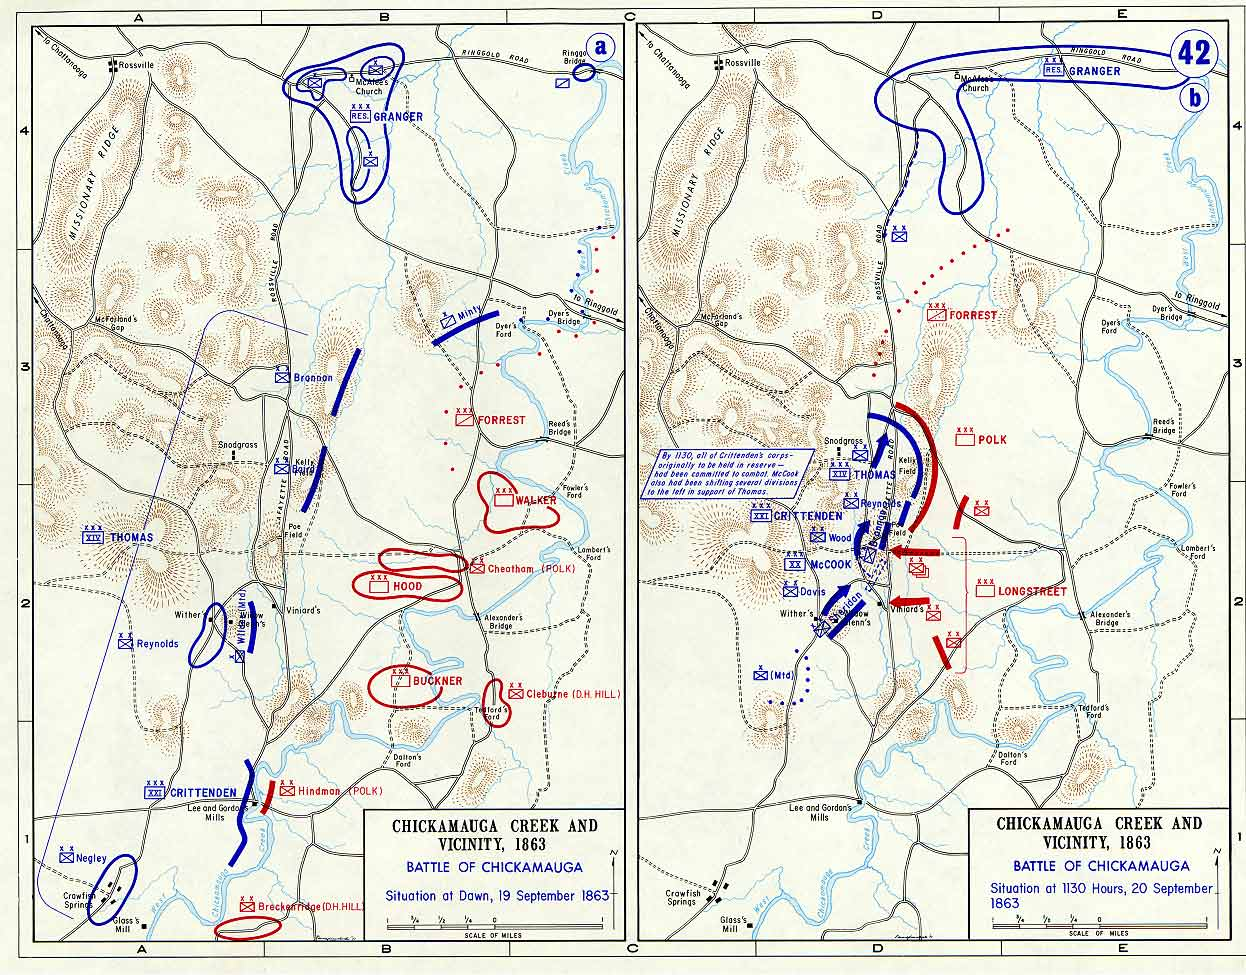 Battle of Chickamauga Confederate and Union Positions